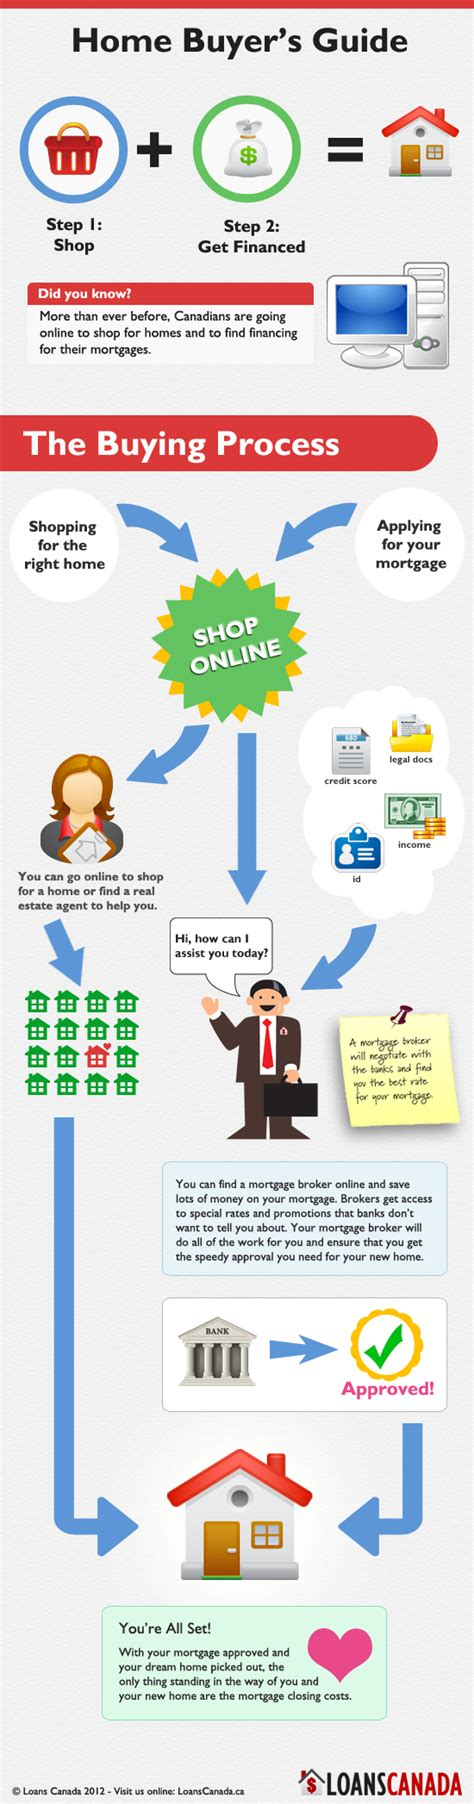 loans for buying a house infographic buying a house loans canada